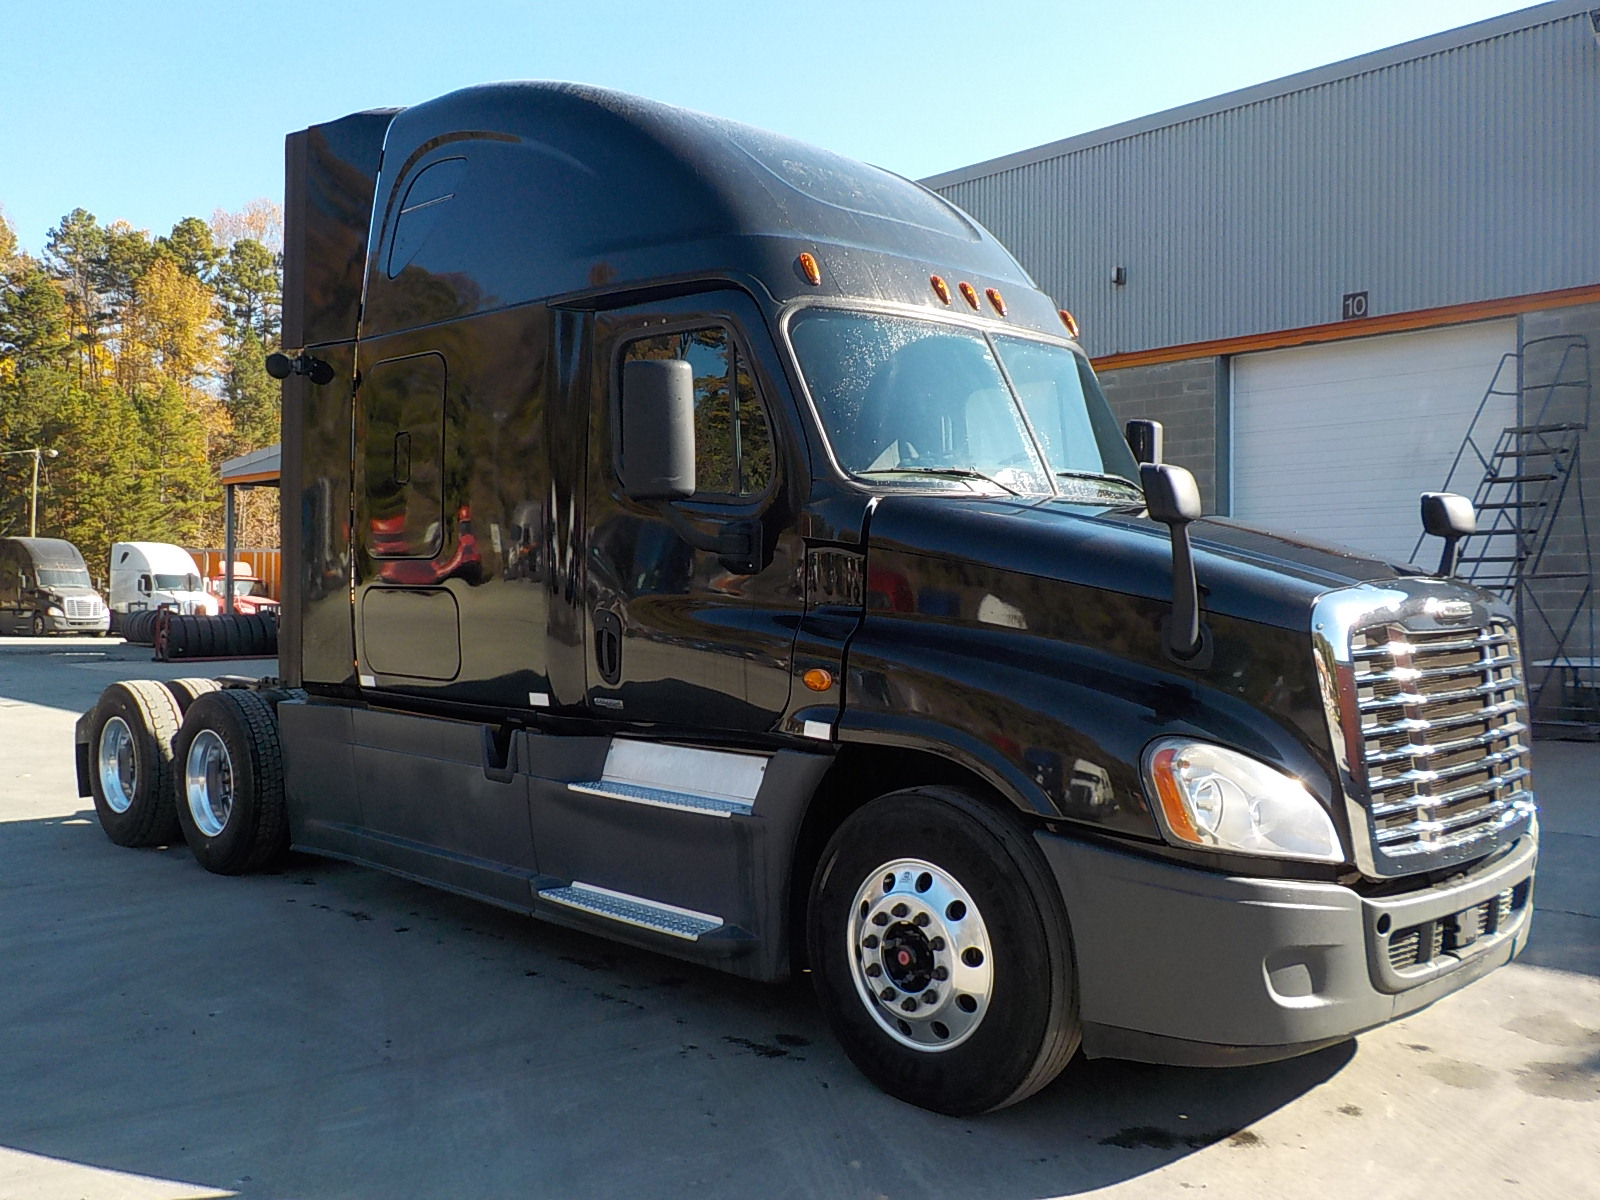 USED 2014 FREIGHTLINER CASCADIA DAYCAB TRUCK #136189